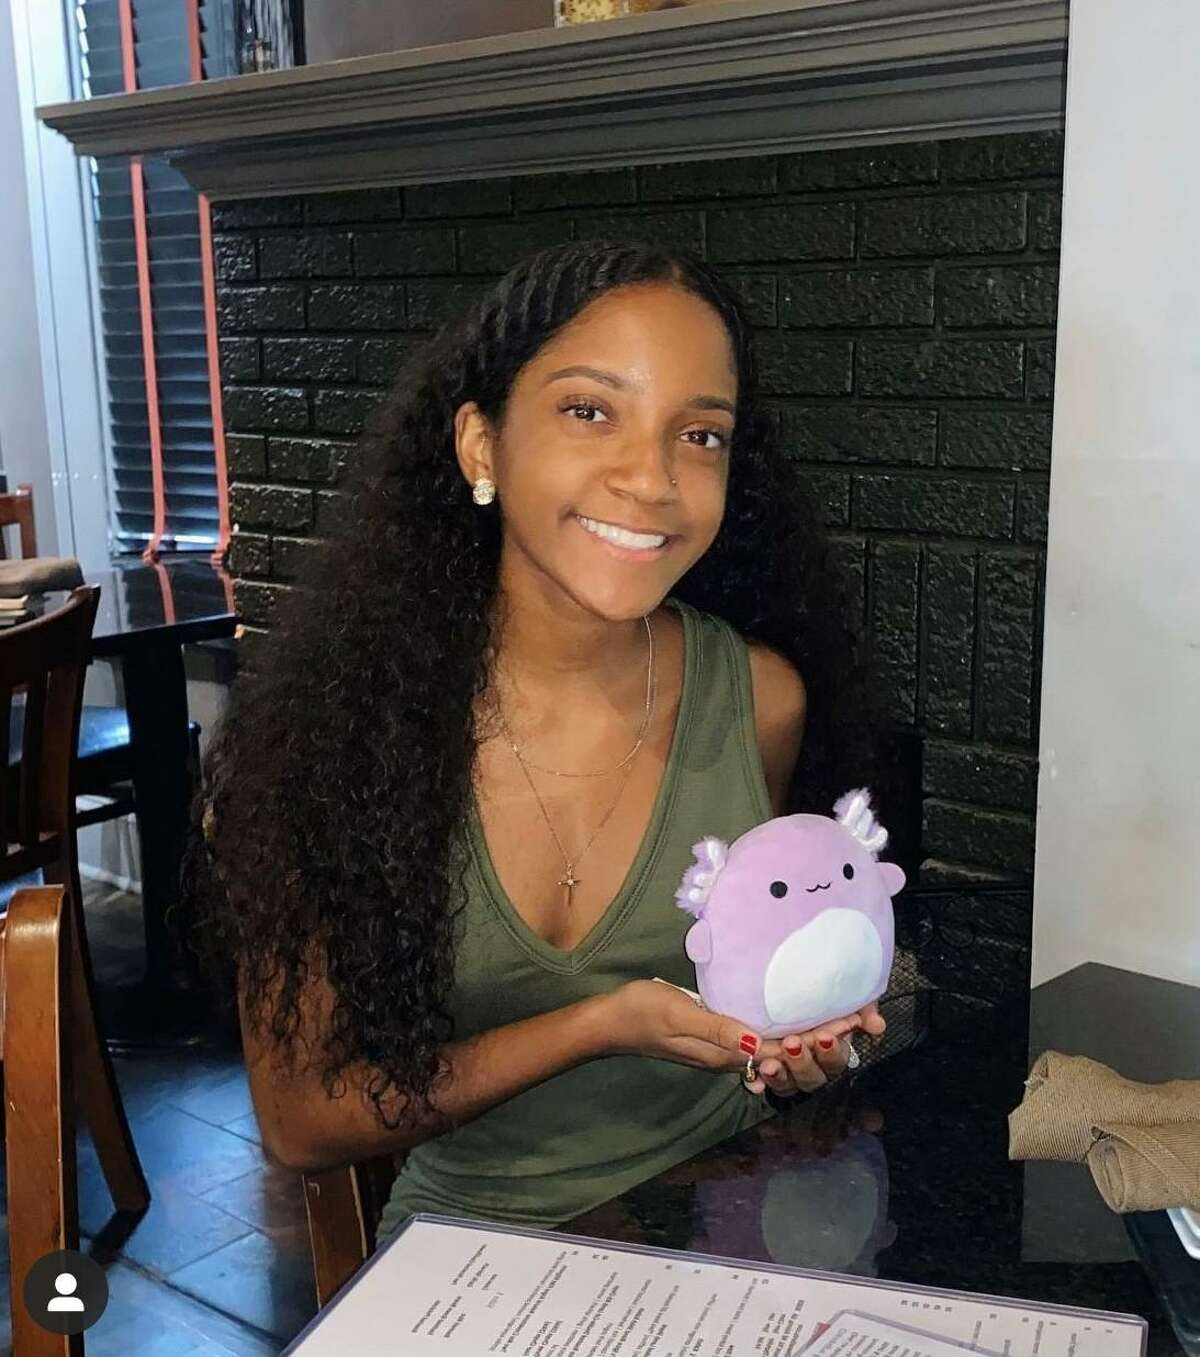 Taylor Hakimi said her Squishmallows helped her deal with the pressures of being a high school senior, working 30 to 35 hours a week in an ice cream shop and living in the age of COVID-19.